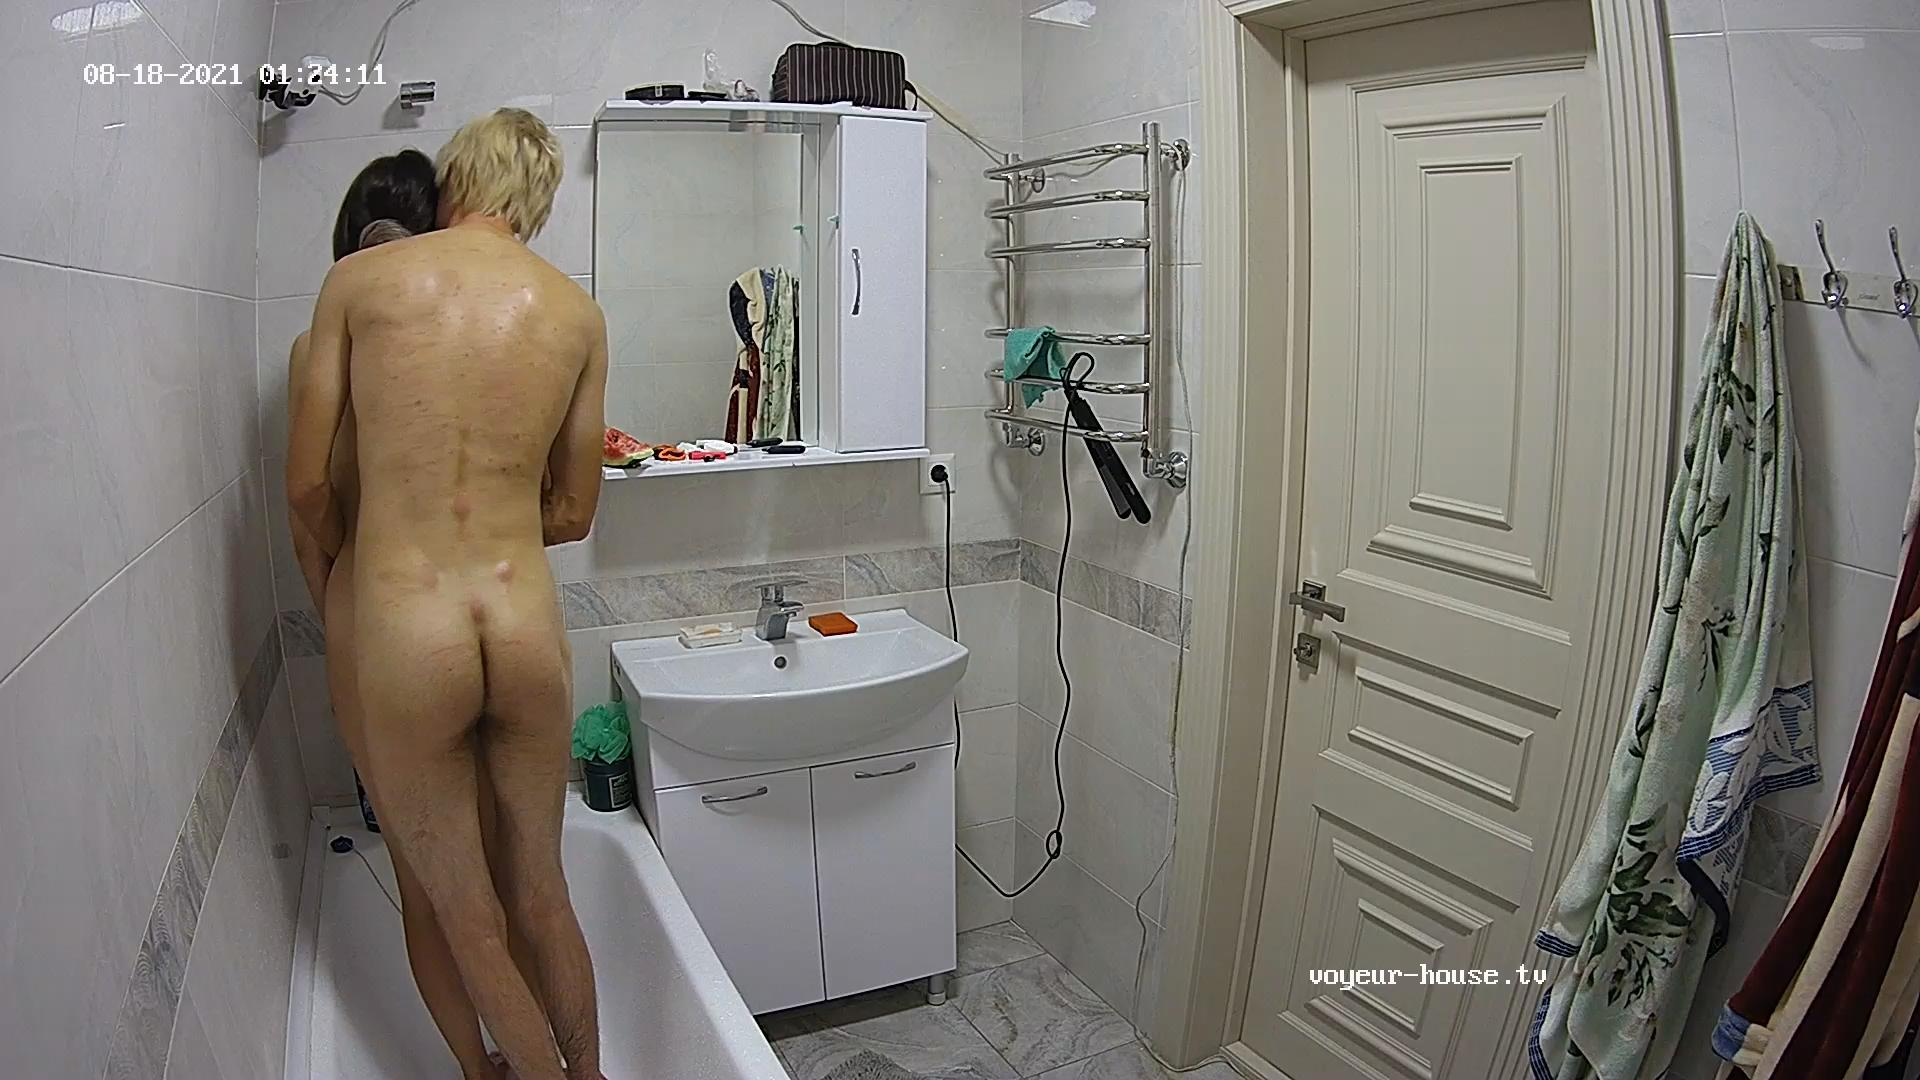 Guest Couple start sex in shower 18 Aug 2021 cam 2